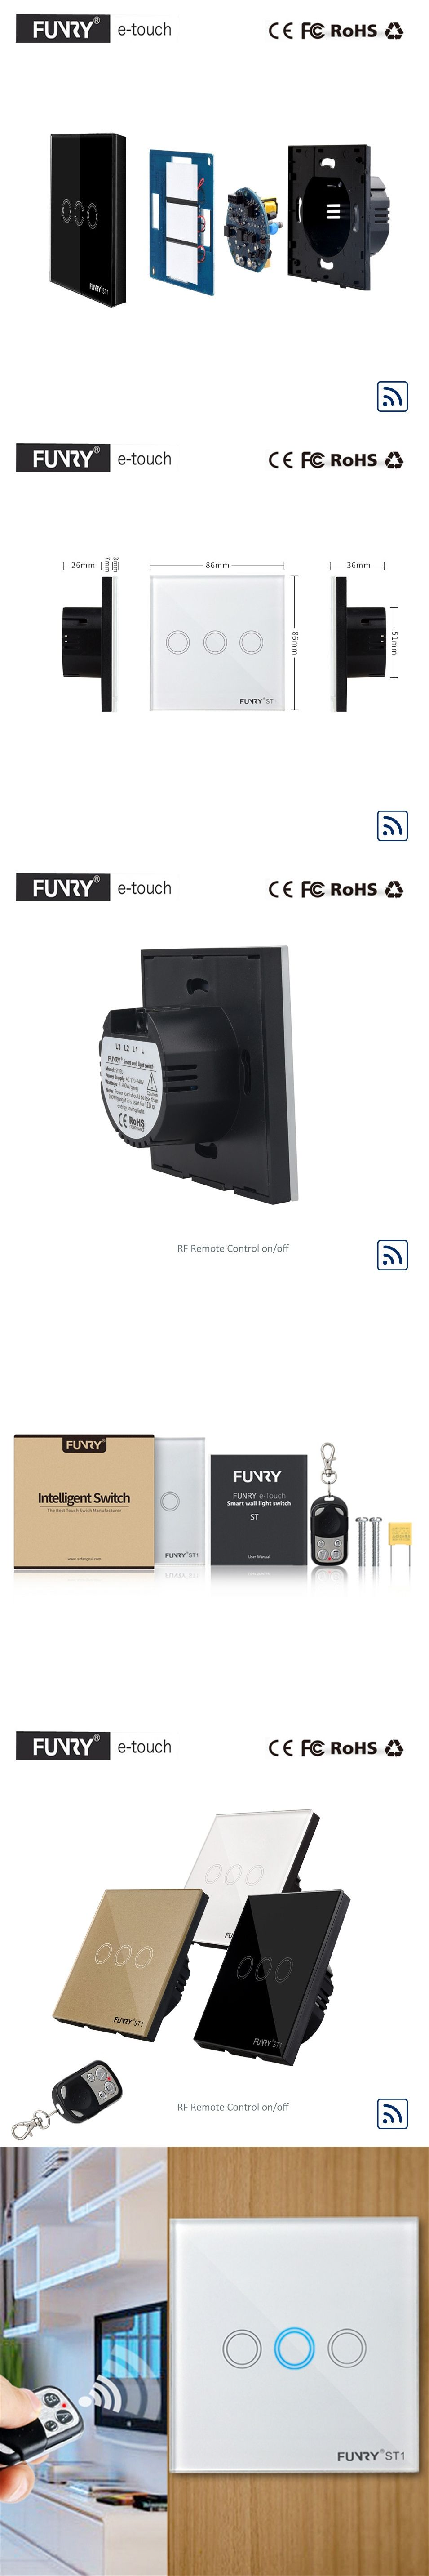 legrand radiant rf switches switch light by products way white p